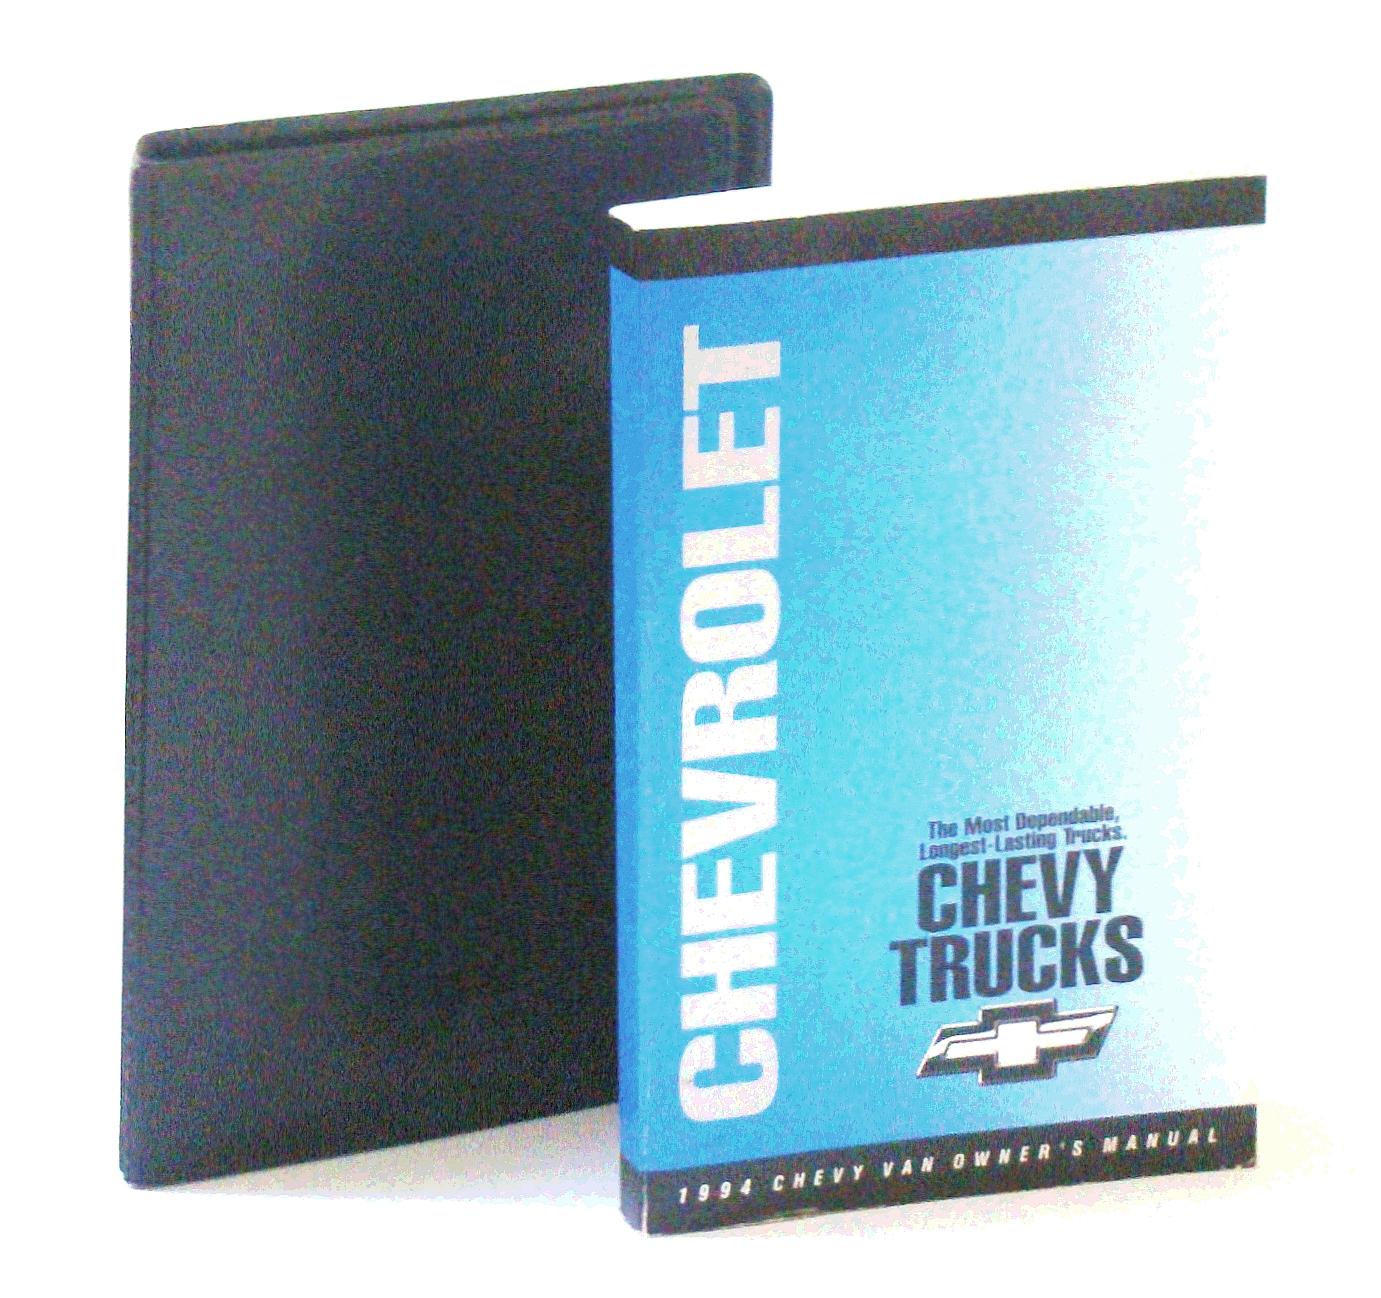 Image for 1994 Chevrolet [GM / General Motors] Van Owner's Manual